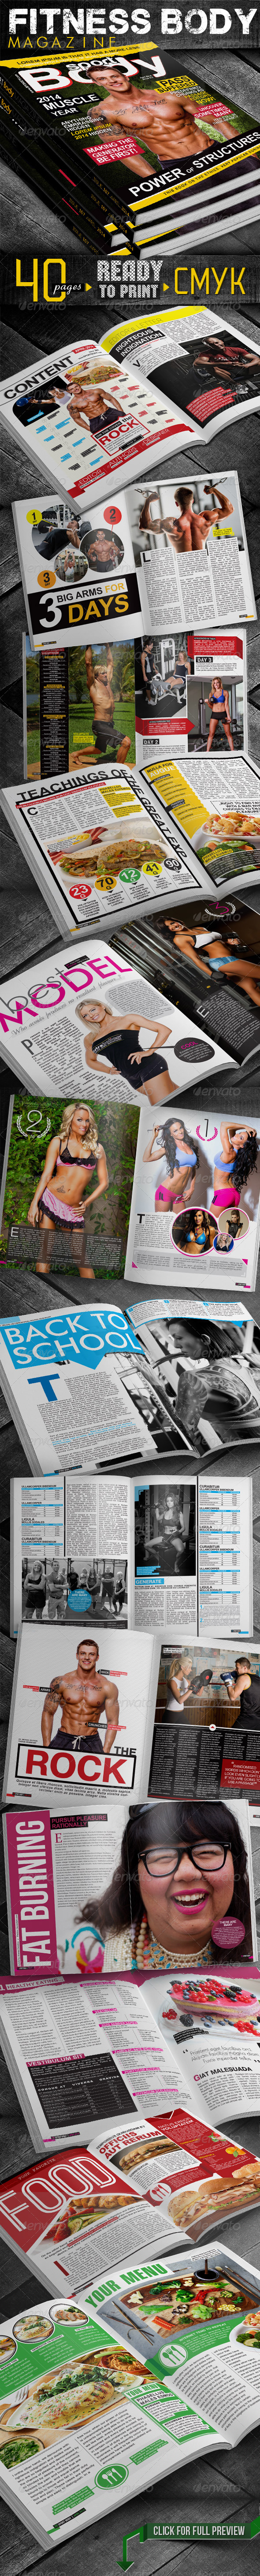 GraphicRiver Fitness Body Magazine 5959520